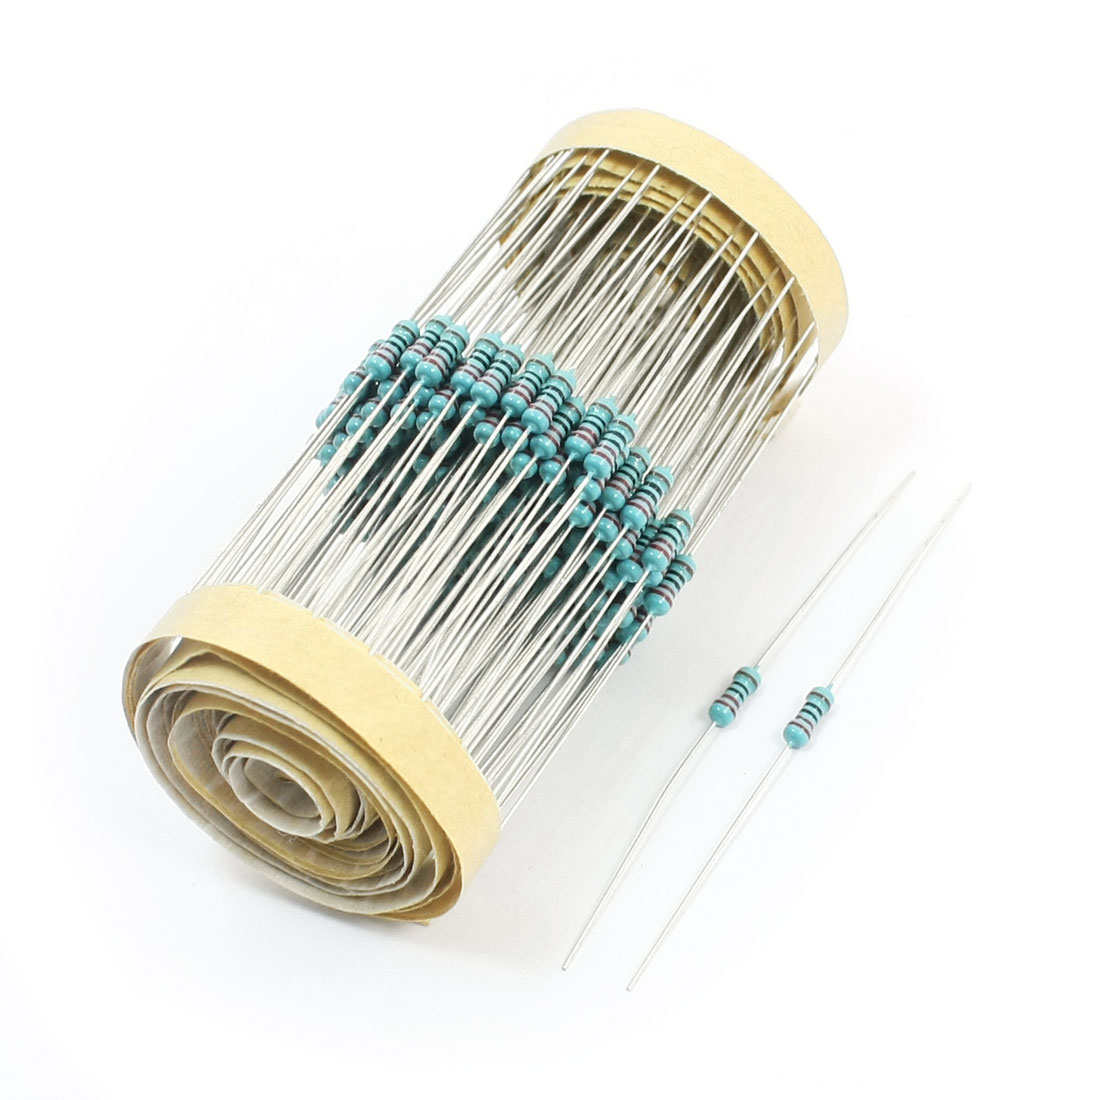 300pcs Colored Ring 1/8W 1% 220 Ohm Axial Lead Metal Film Resistors